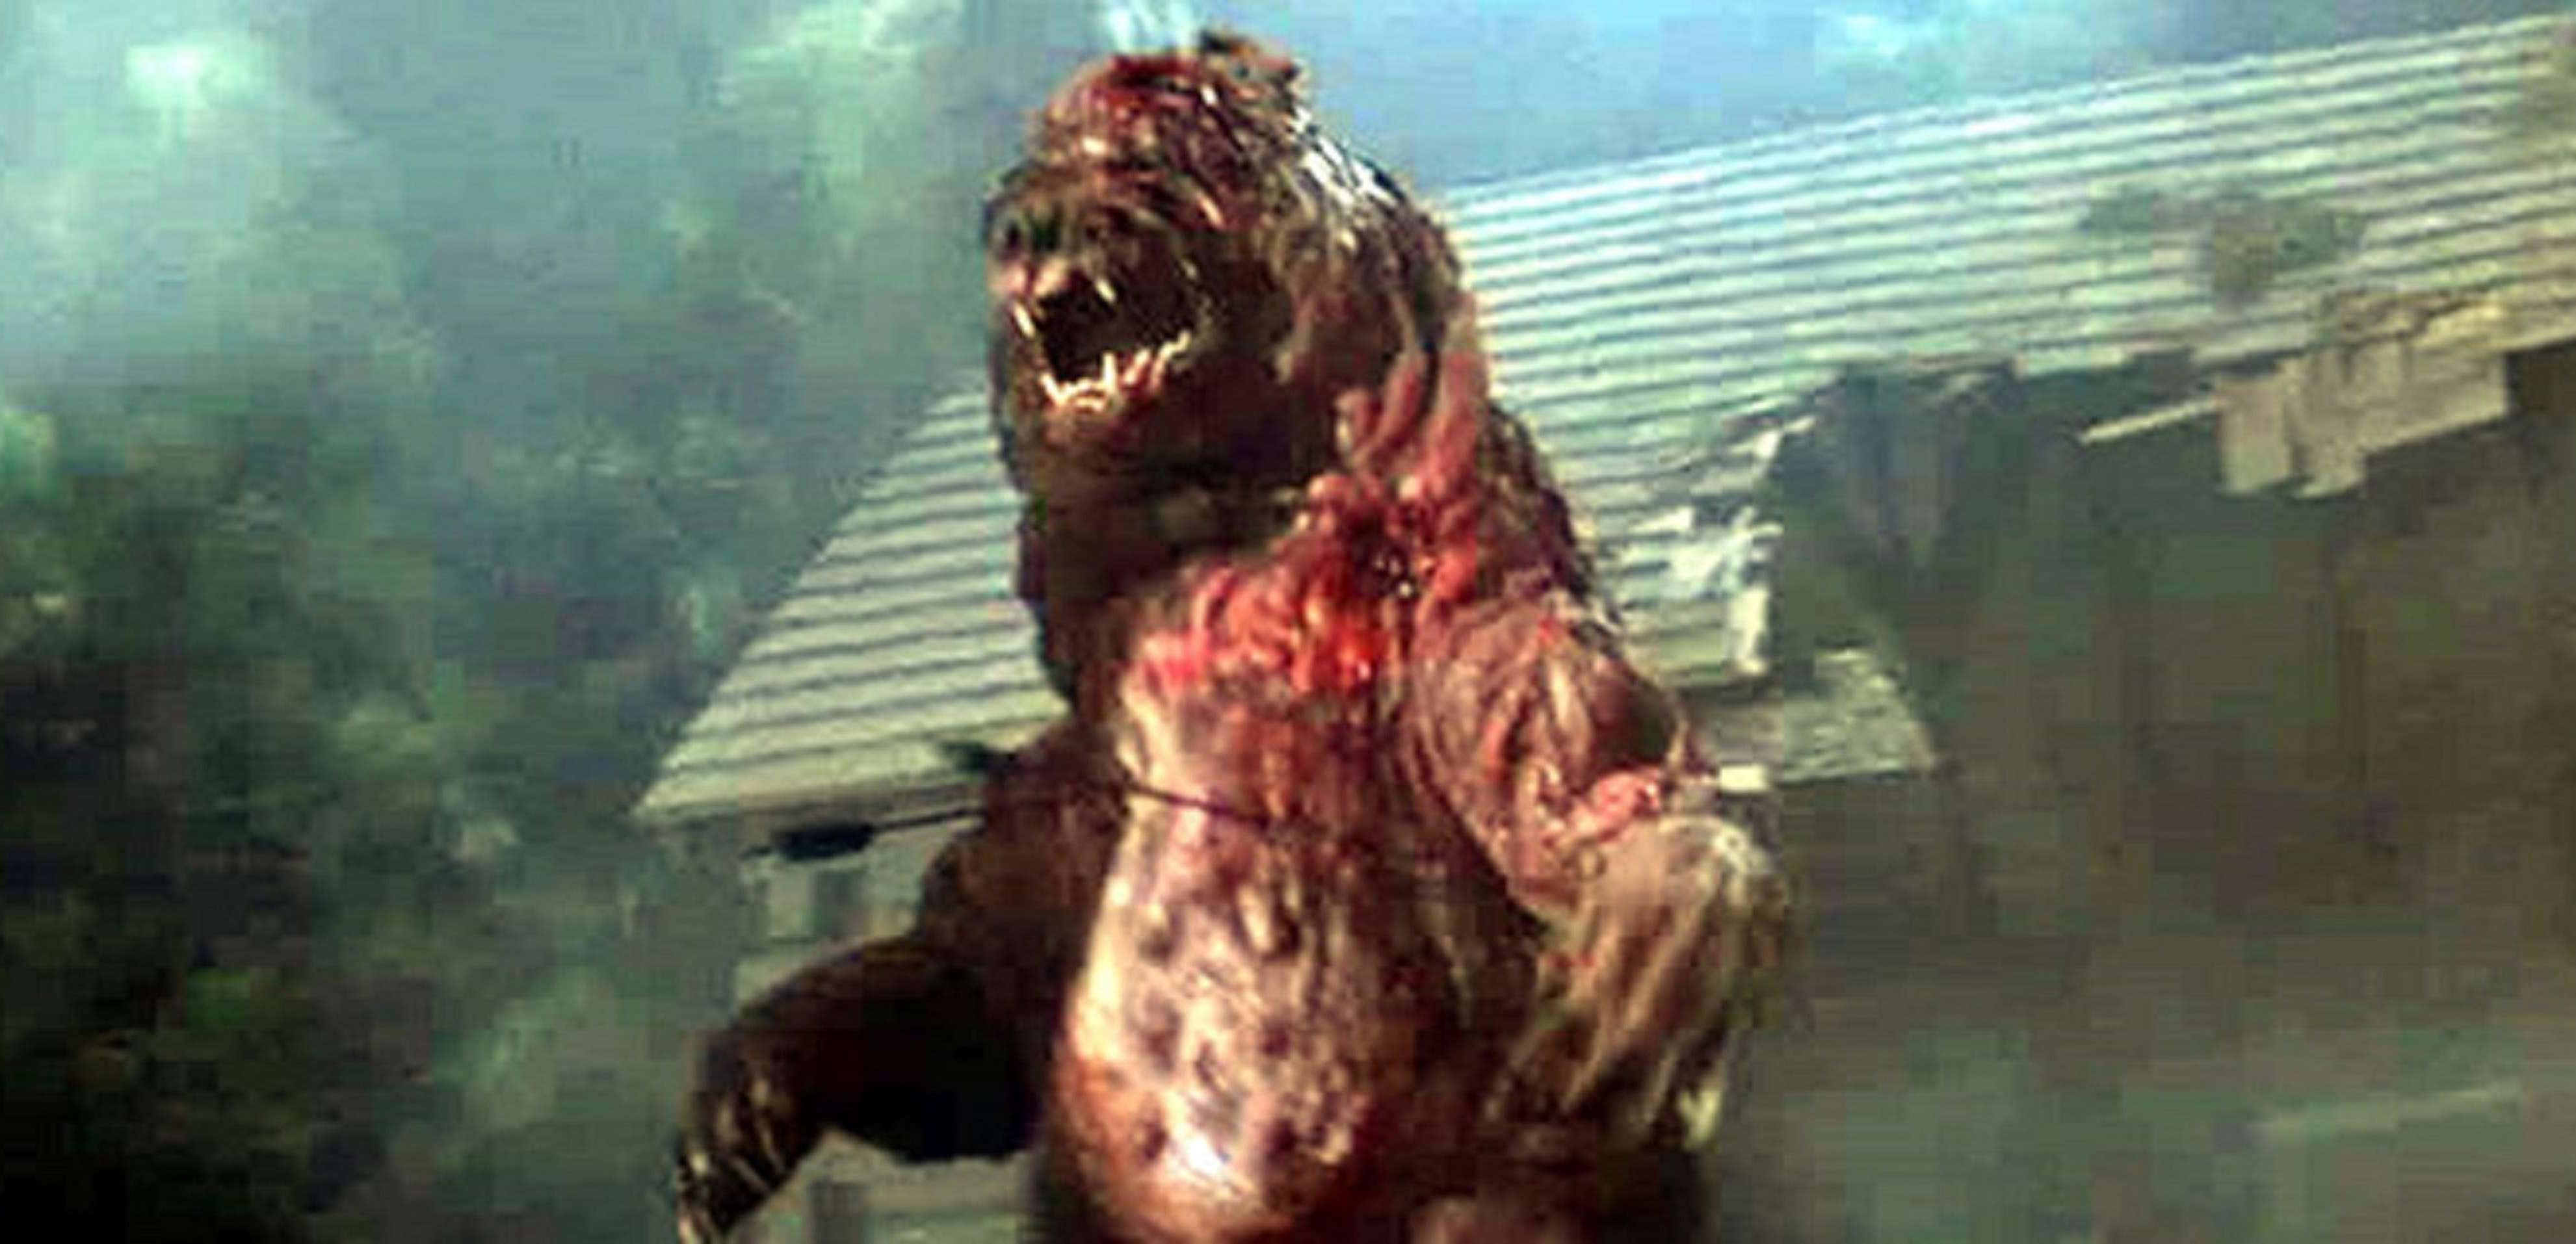 The mutant bear on the rampage in Prophecy (1979)